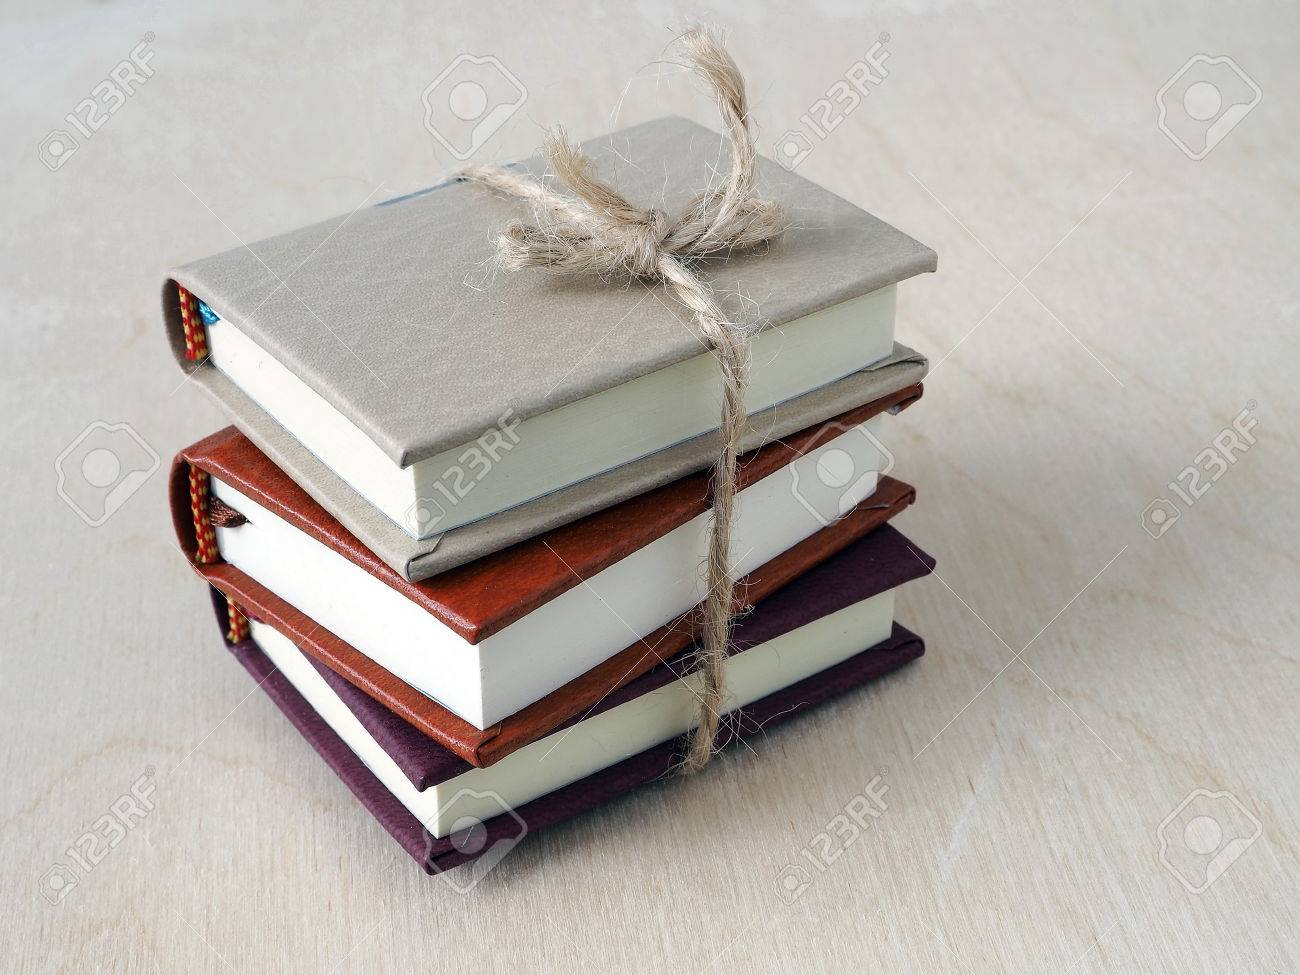 Back to School Concept  A Pile of Small Books Tied Up with a